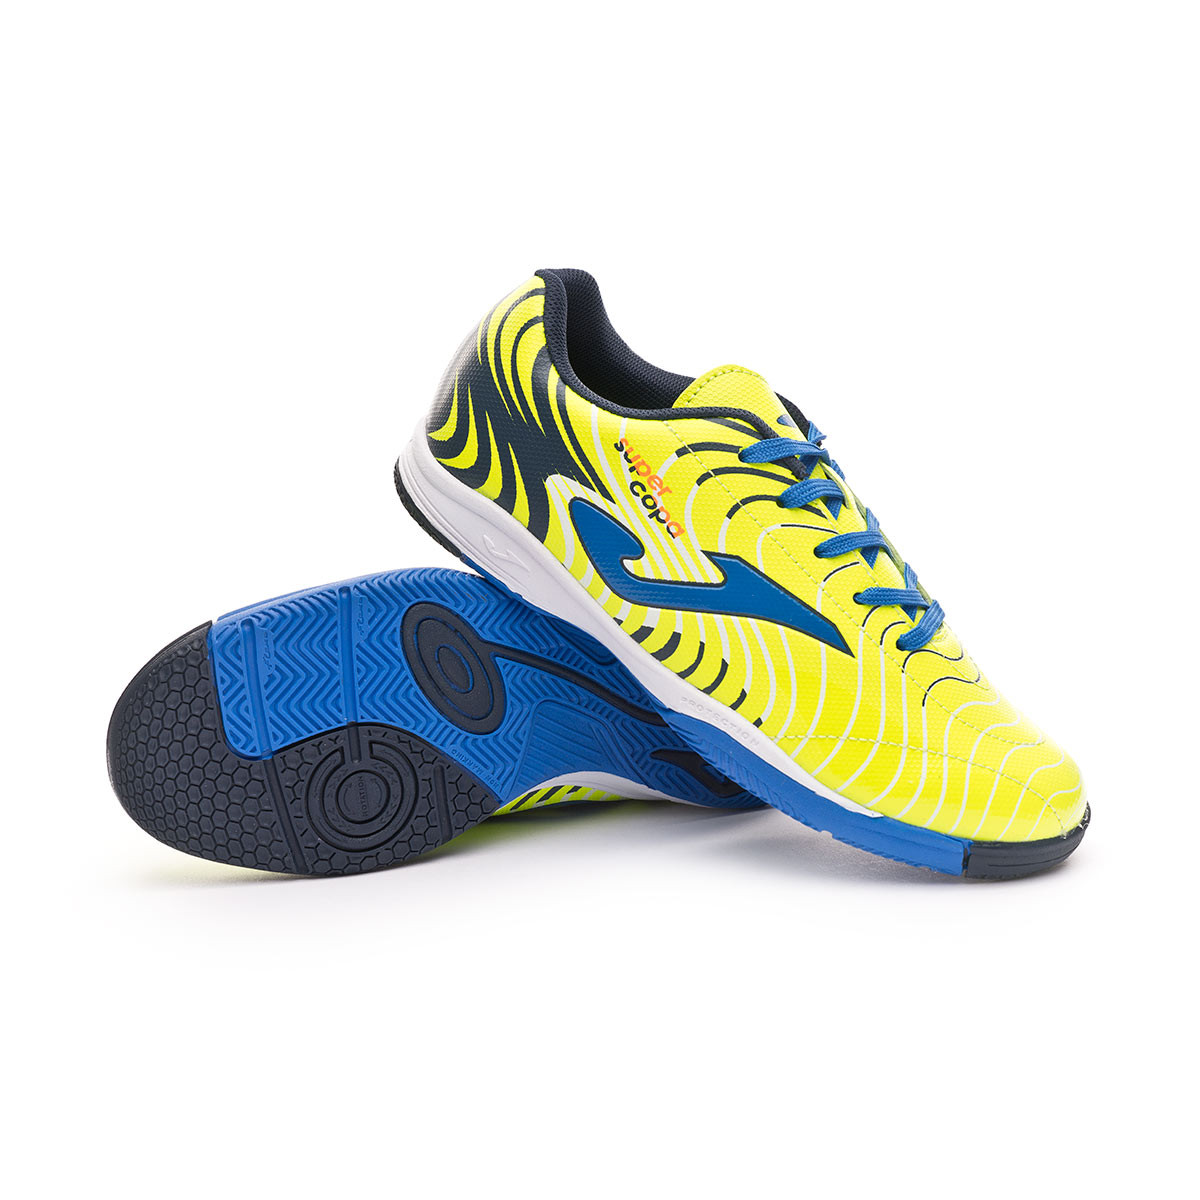 mizuno volleyball shoes hk yellow